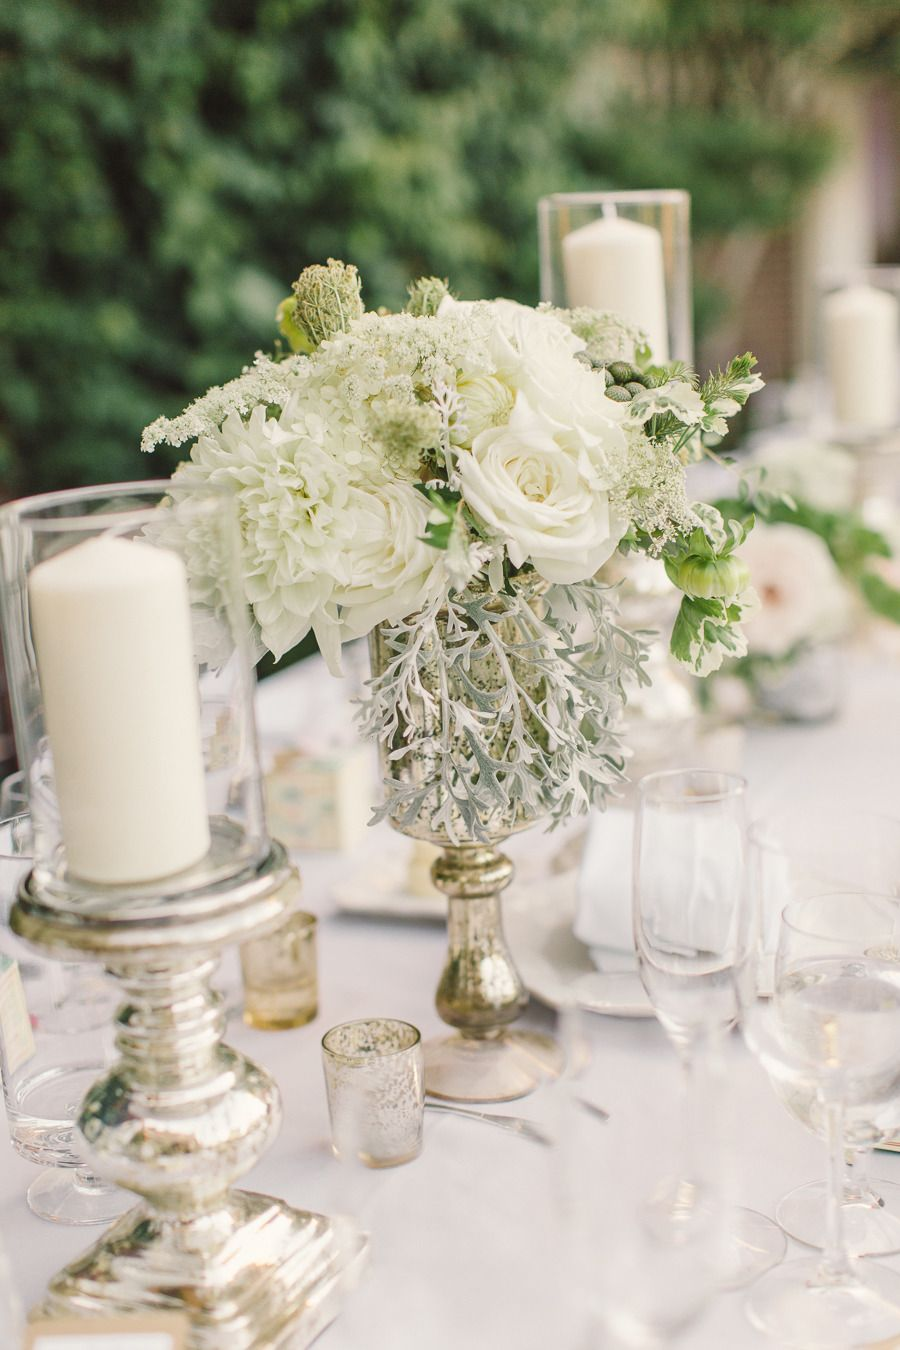 Outdoor Elegance at the Kohl Mansion | Centerpieces, Wedding ...